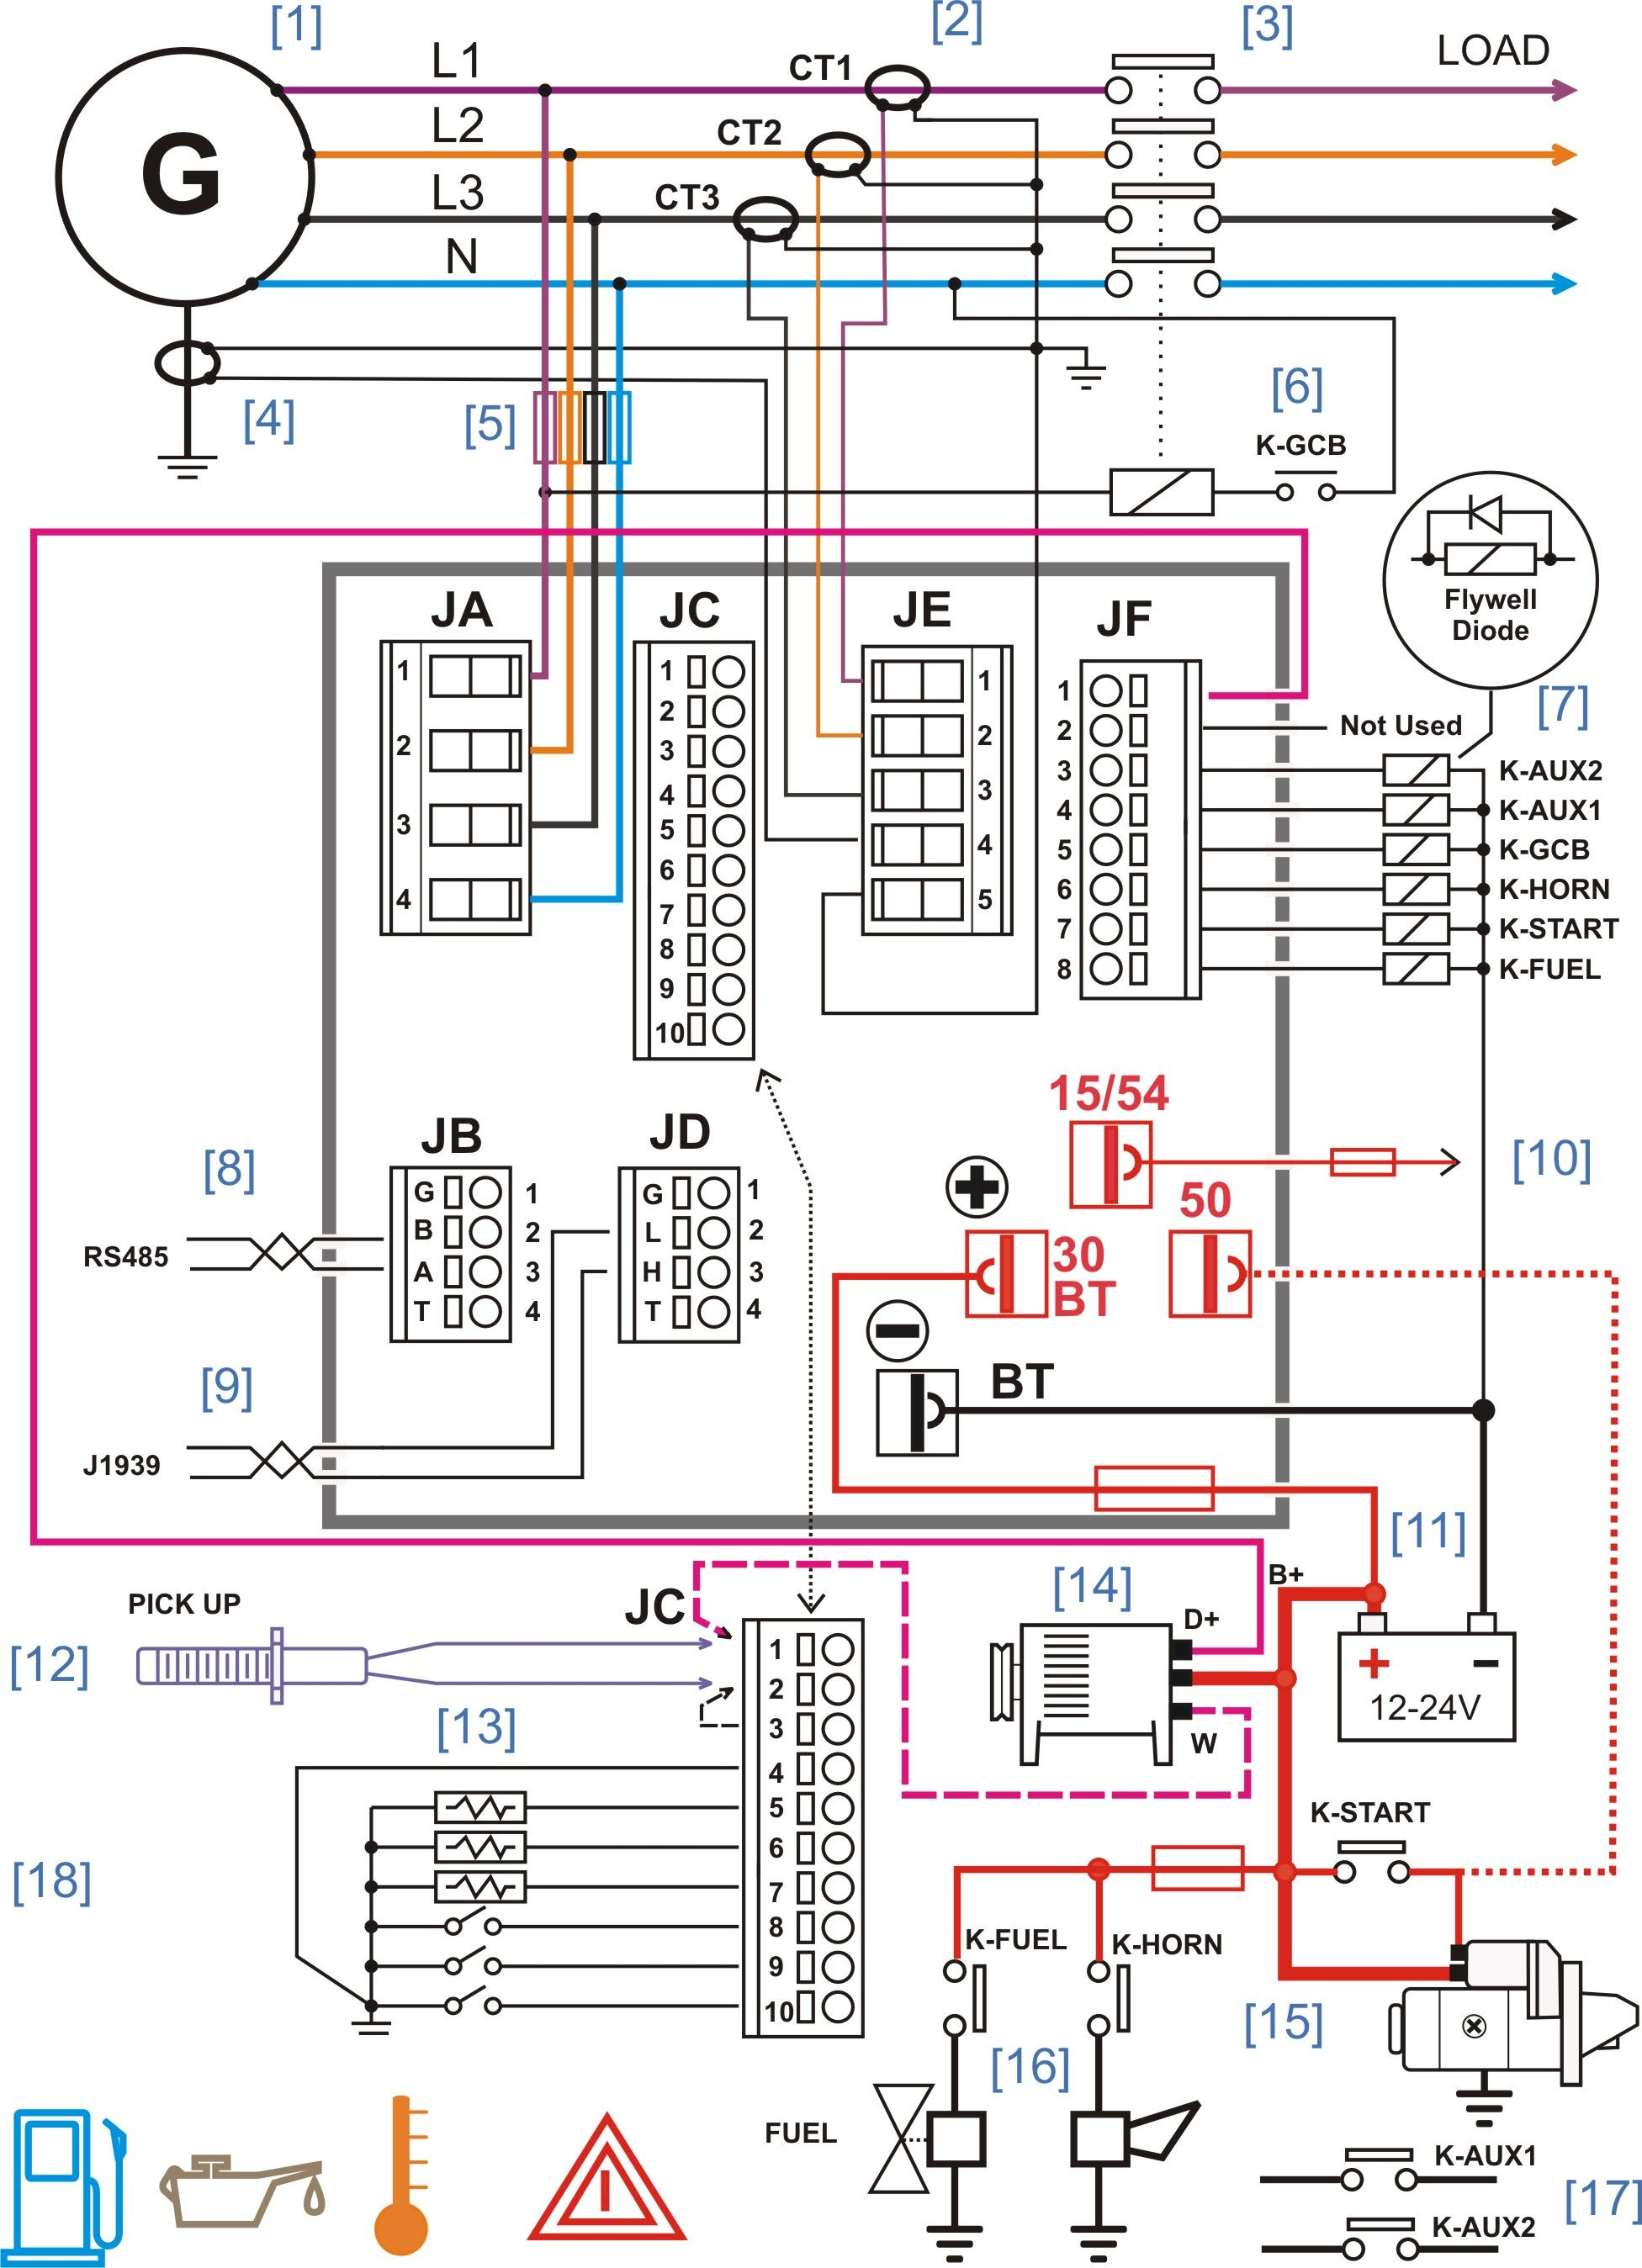 industrial control panel wiring color code free download wiring